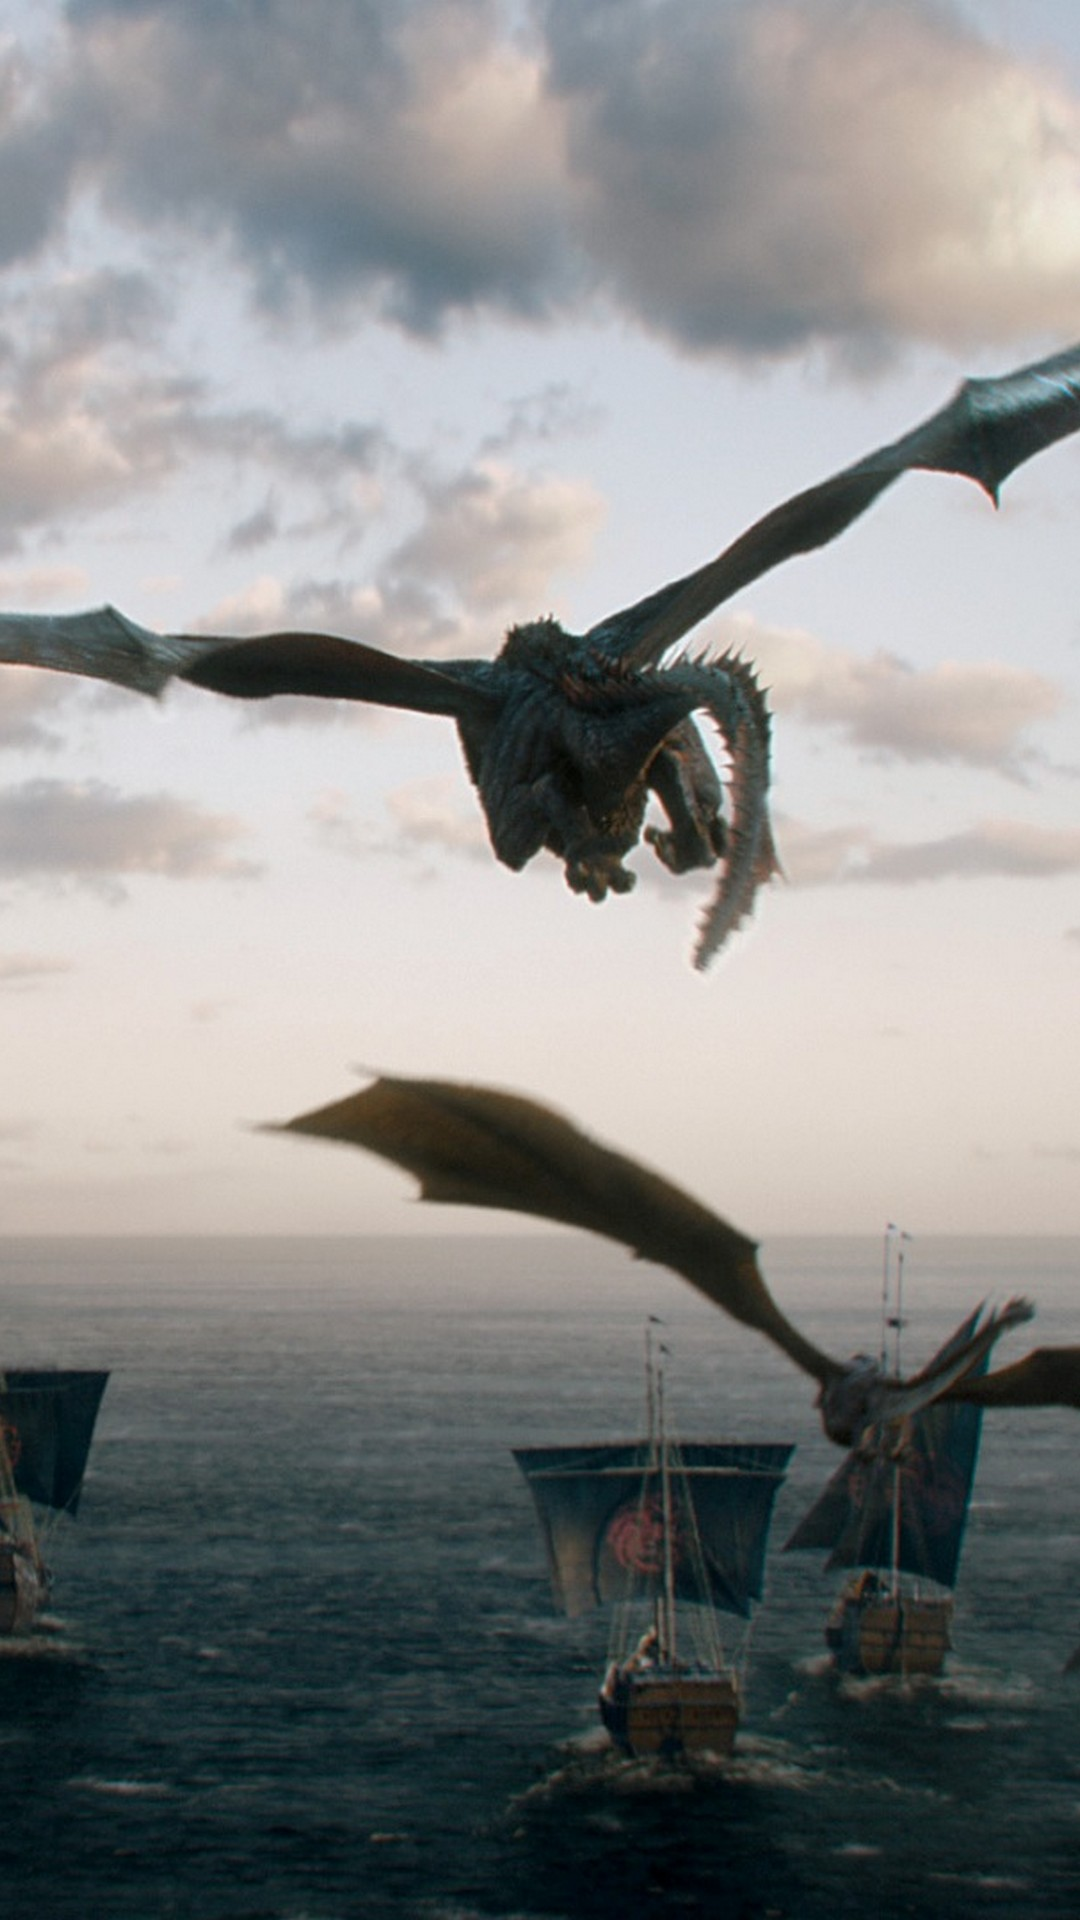 Game Of Thrones Dragons Wallpaper For Iphone With High-resolution - Game Of Thrones Dragon Wallpaper Iphone - HD Wallpaper